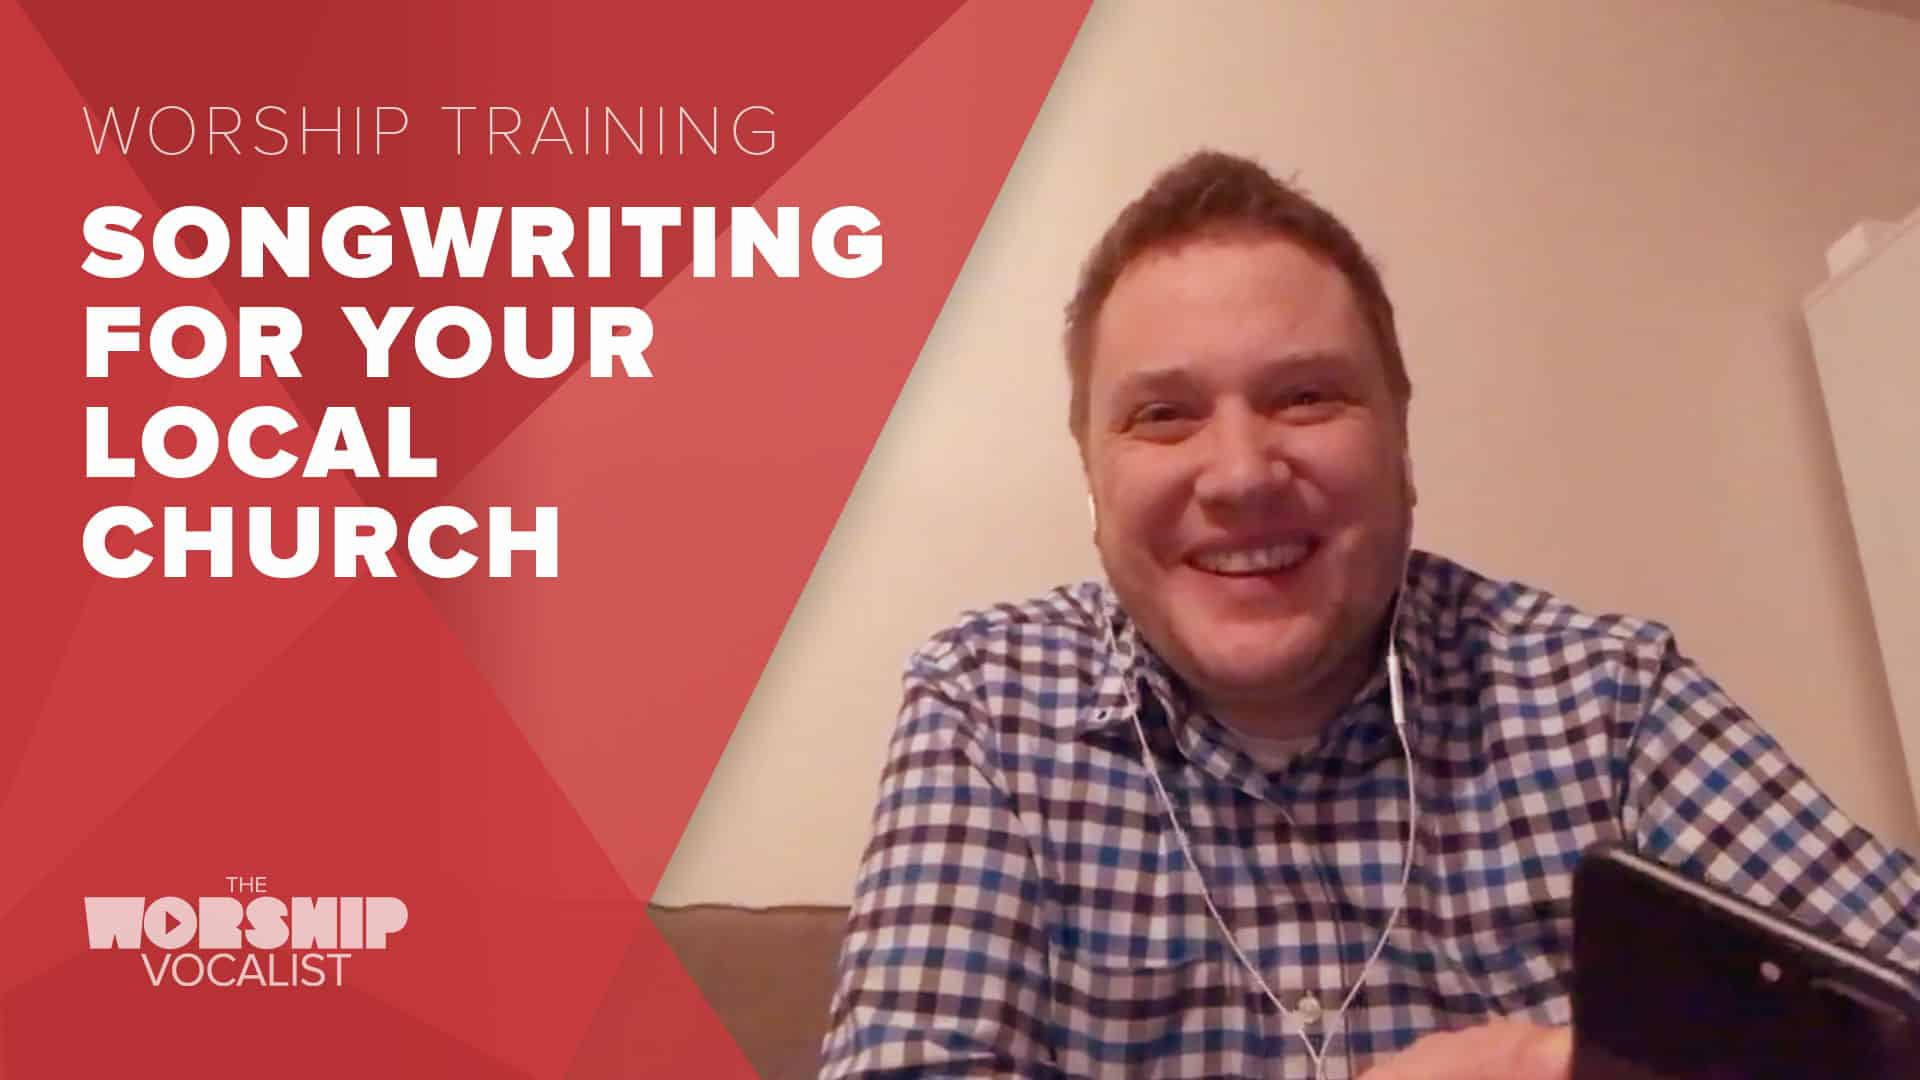 Songwriting for Your Local Church